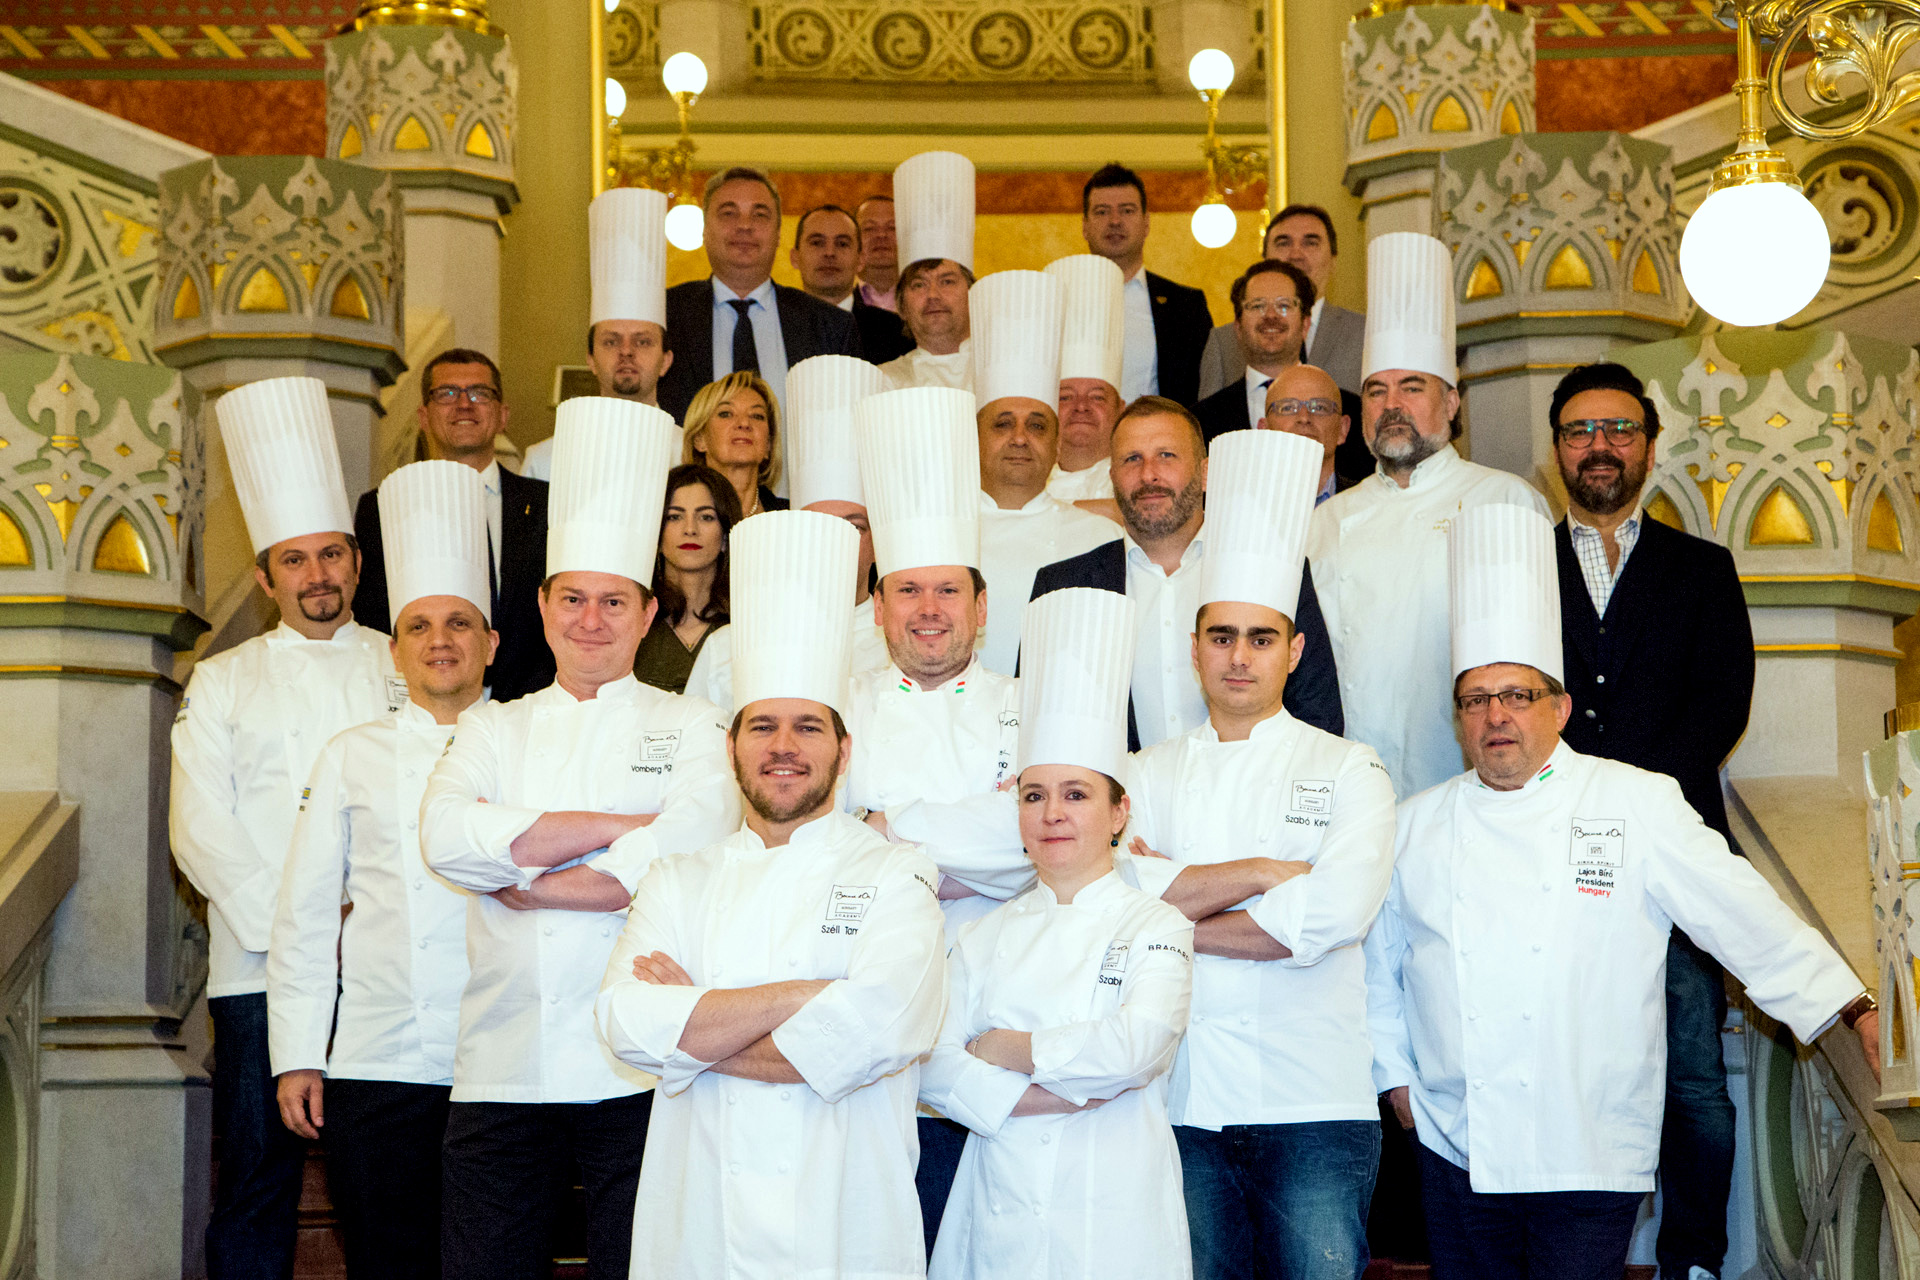 2016-04-22_bocuse_europe_press_conference_img_2441.jpg